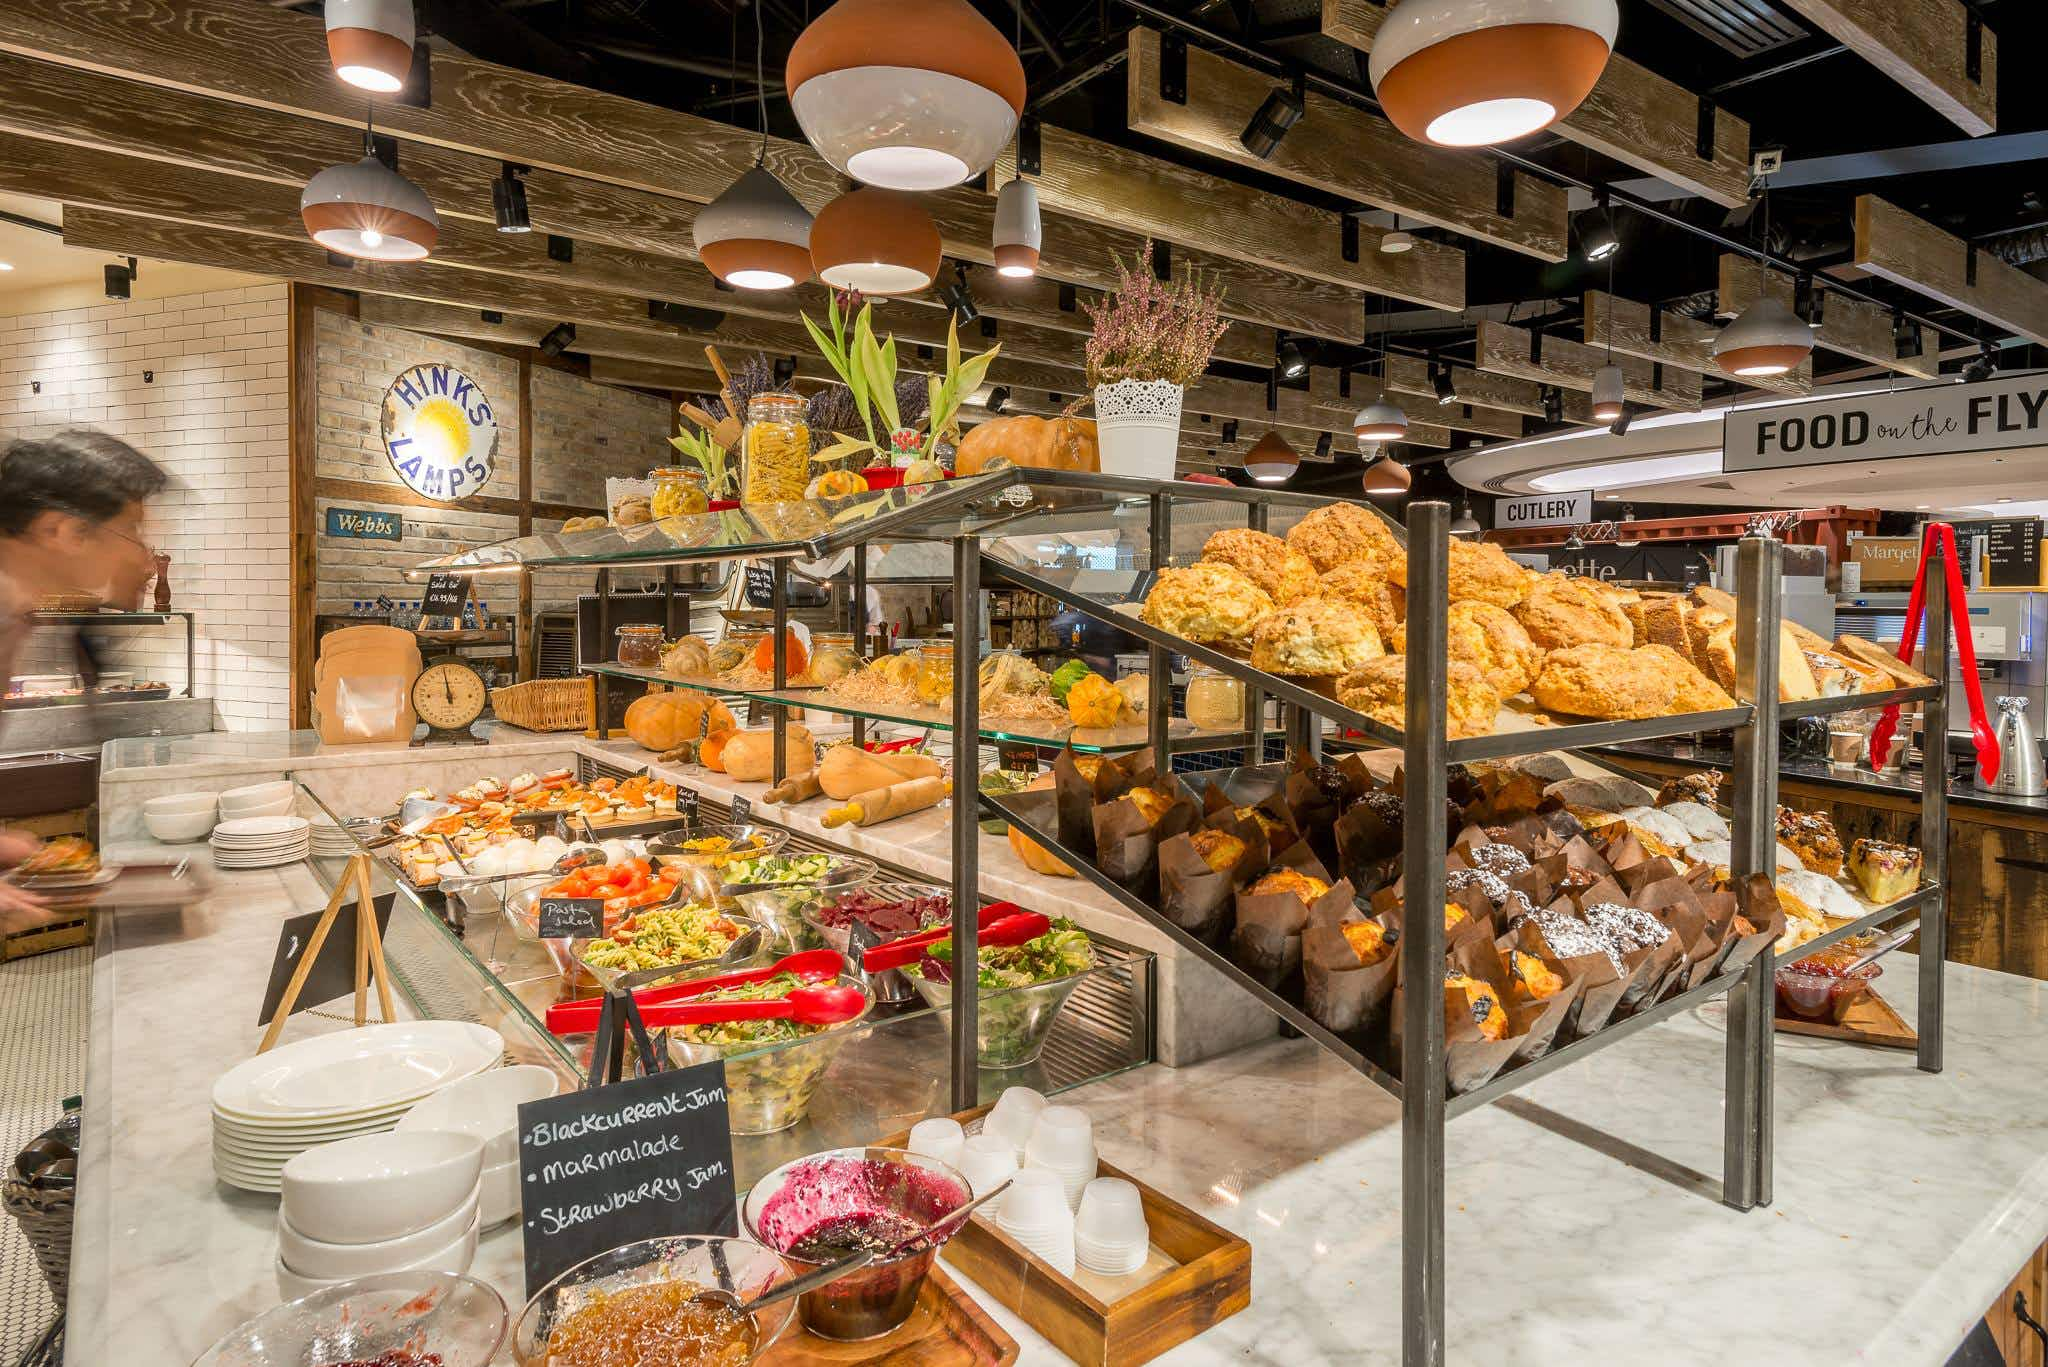 This airport is trialling an honesty-based food and drink outlet for passengers in a hurry